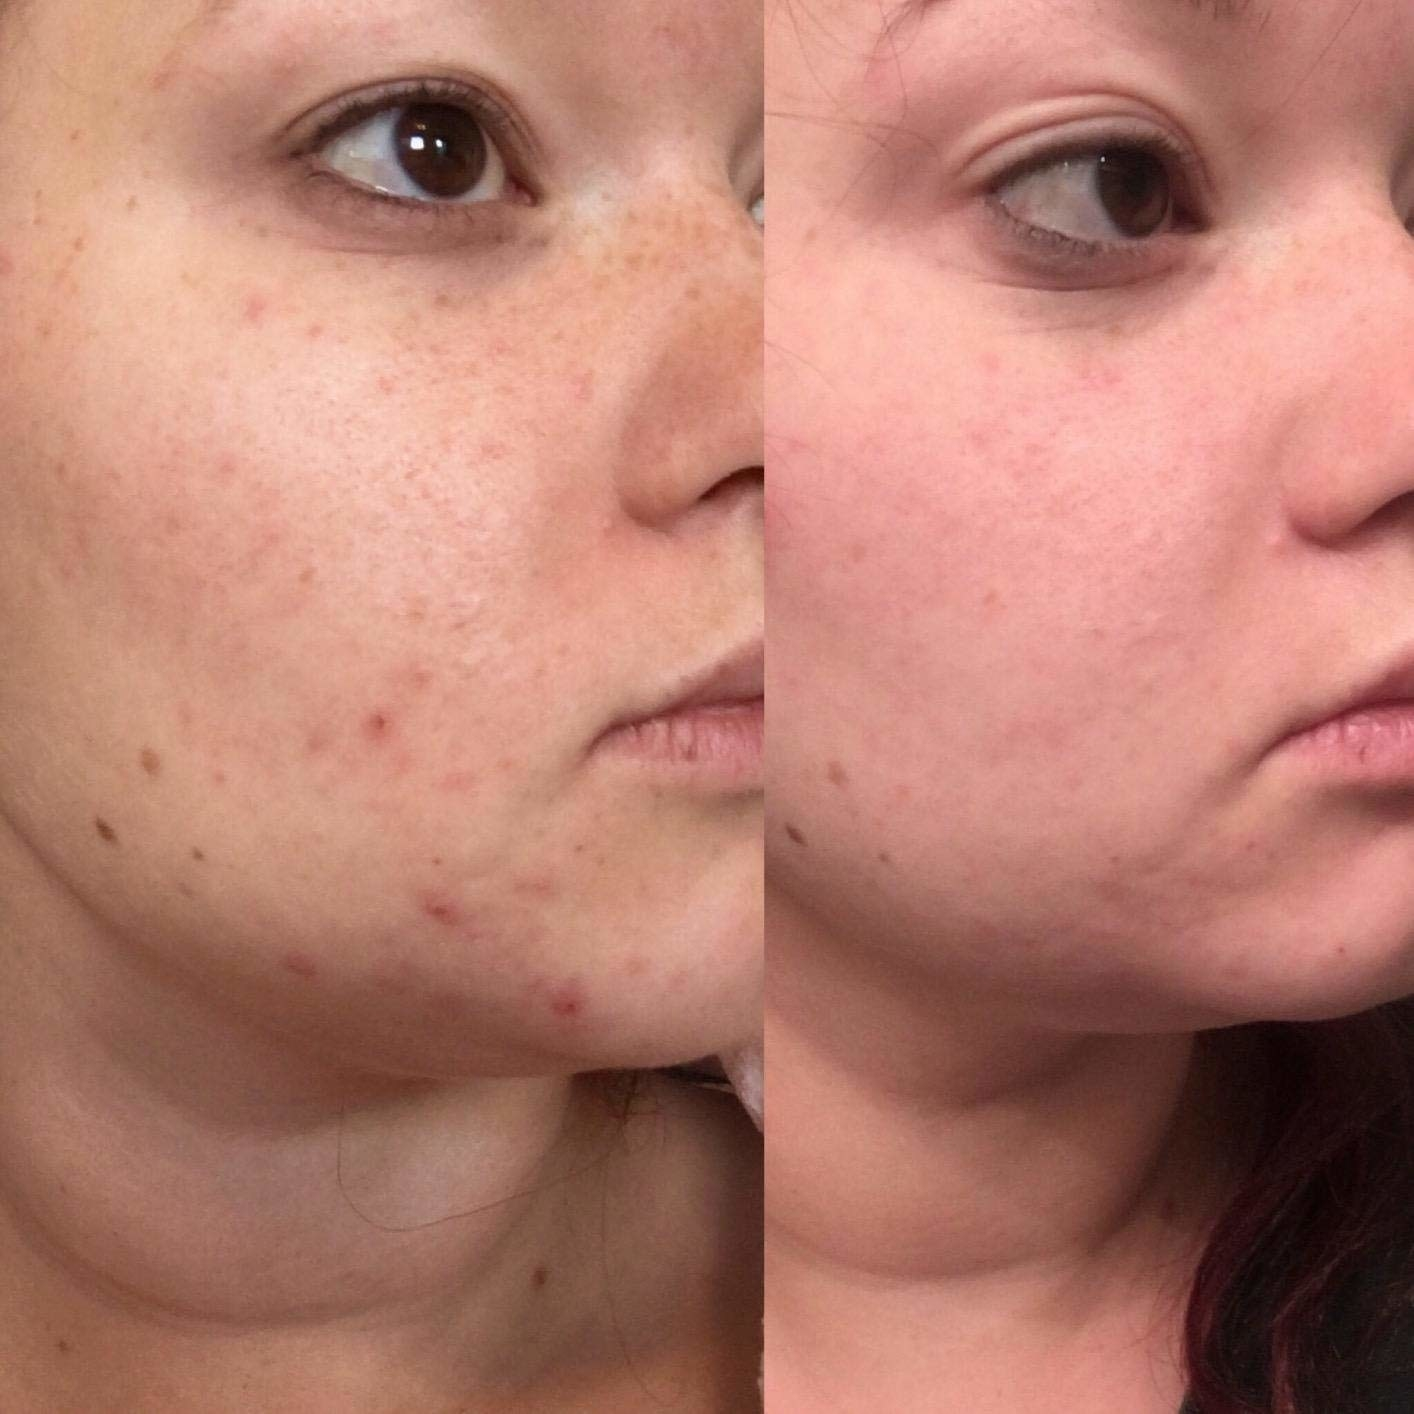 A reviewer's skin in a before/after with reduced acne